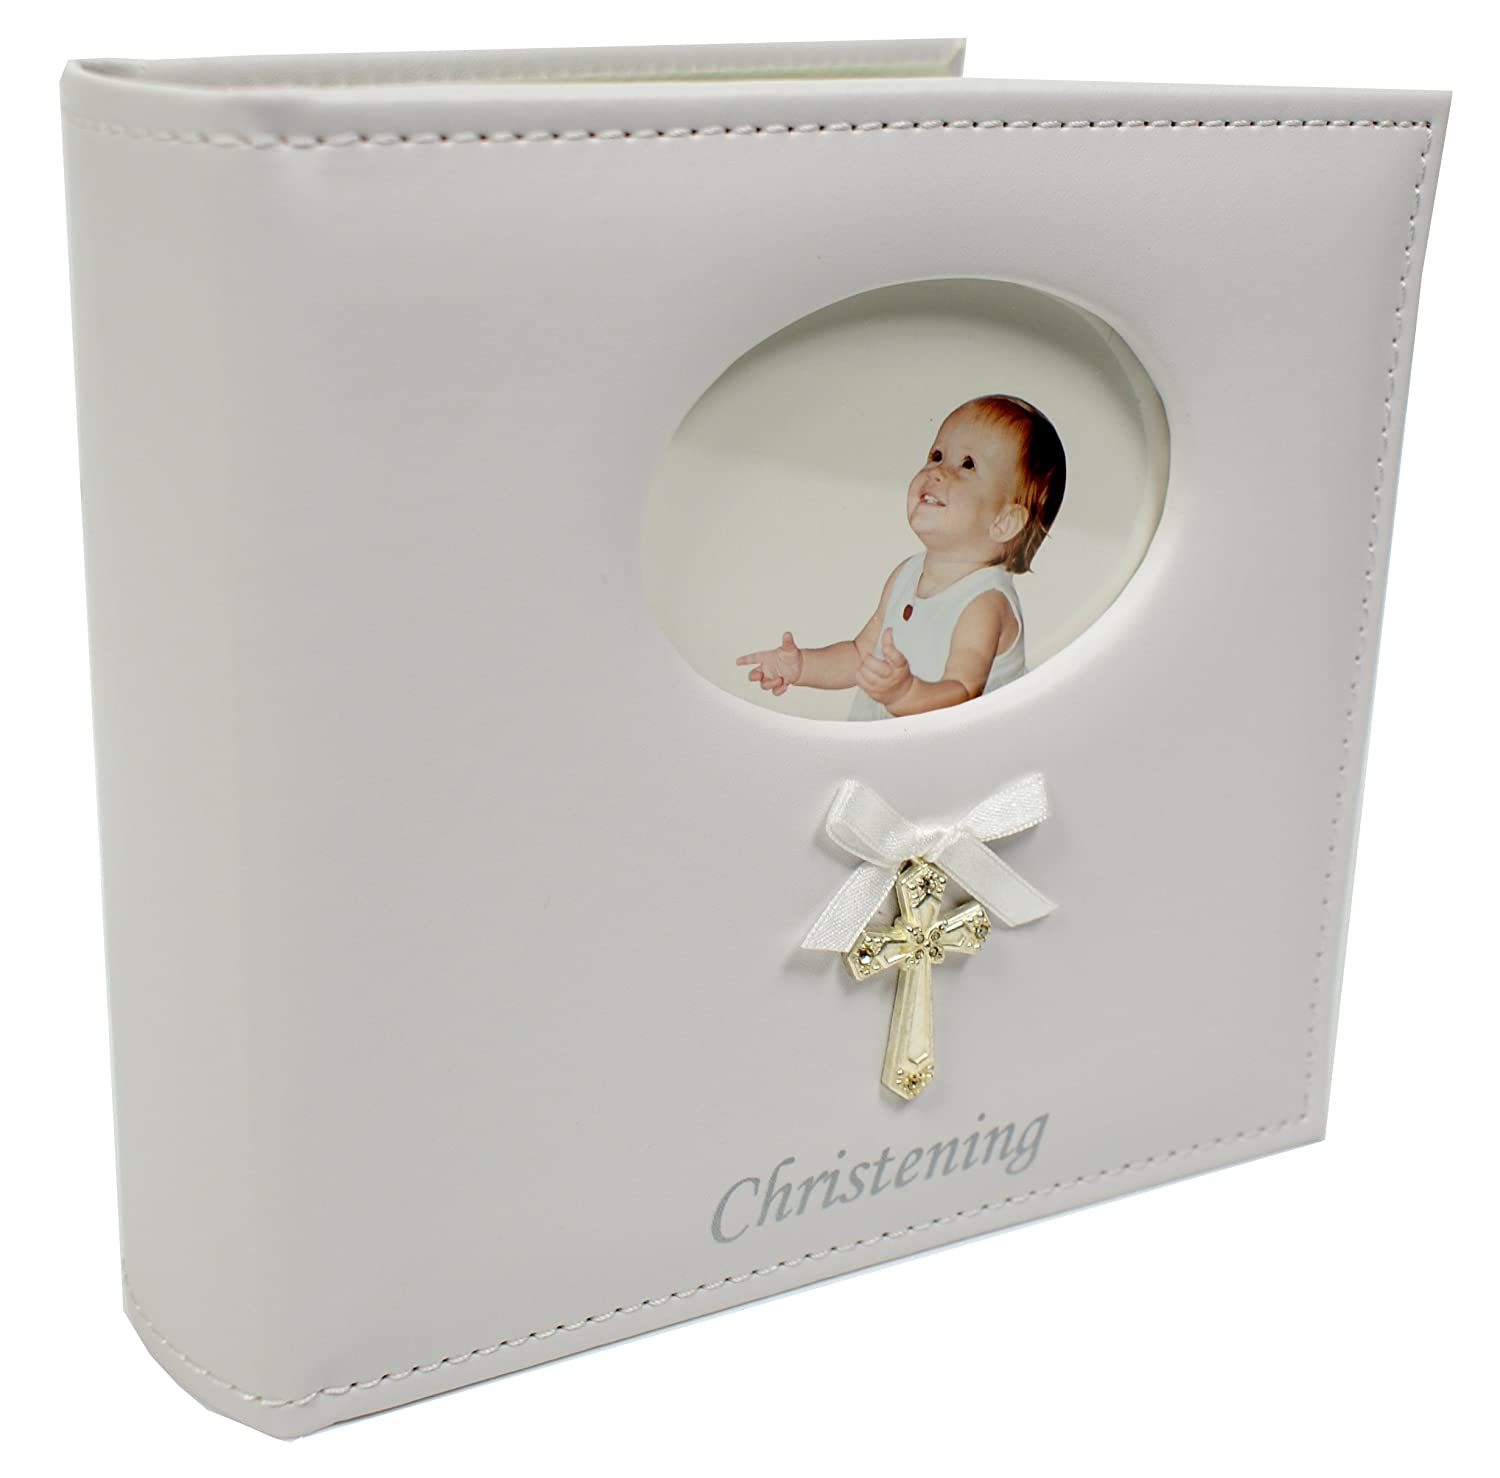 Leatherette Christening Photo Album with Cross and Ribbon Shudehill 77790